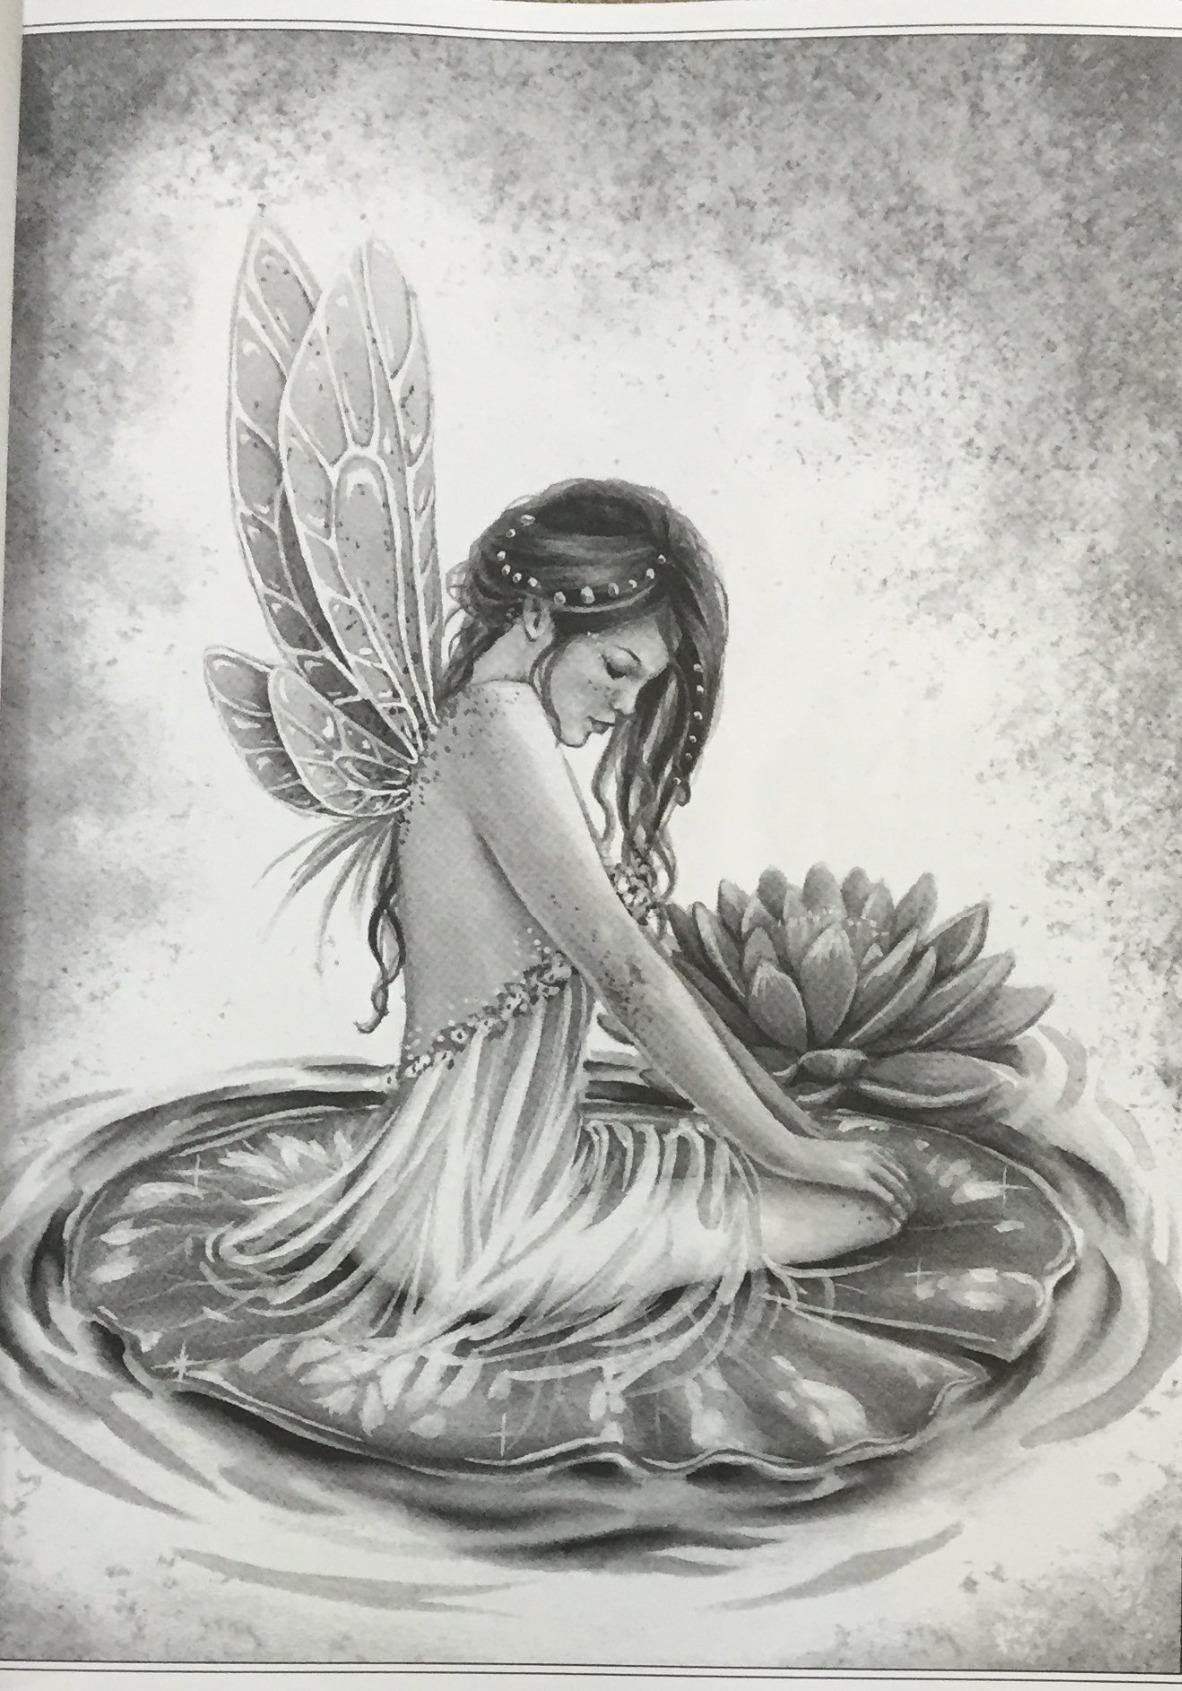 Fairy art coloring book by selina fenech - Amazonsmile Fairy Art Grayscale Coloring Edition Grayscale Coloring Books By Selina